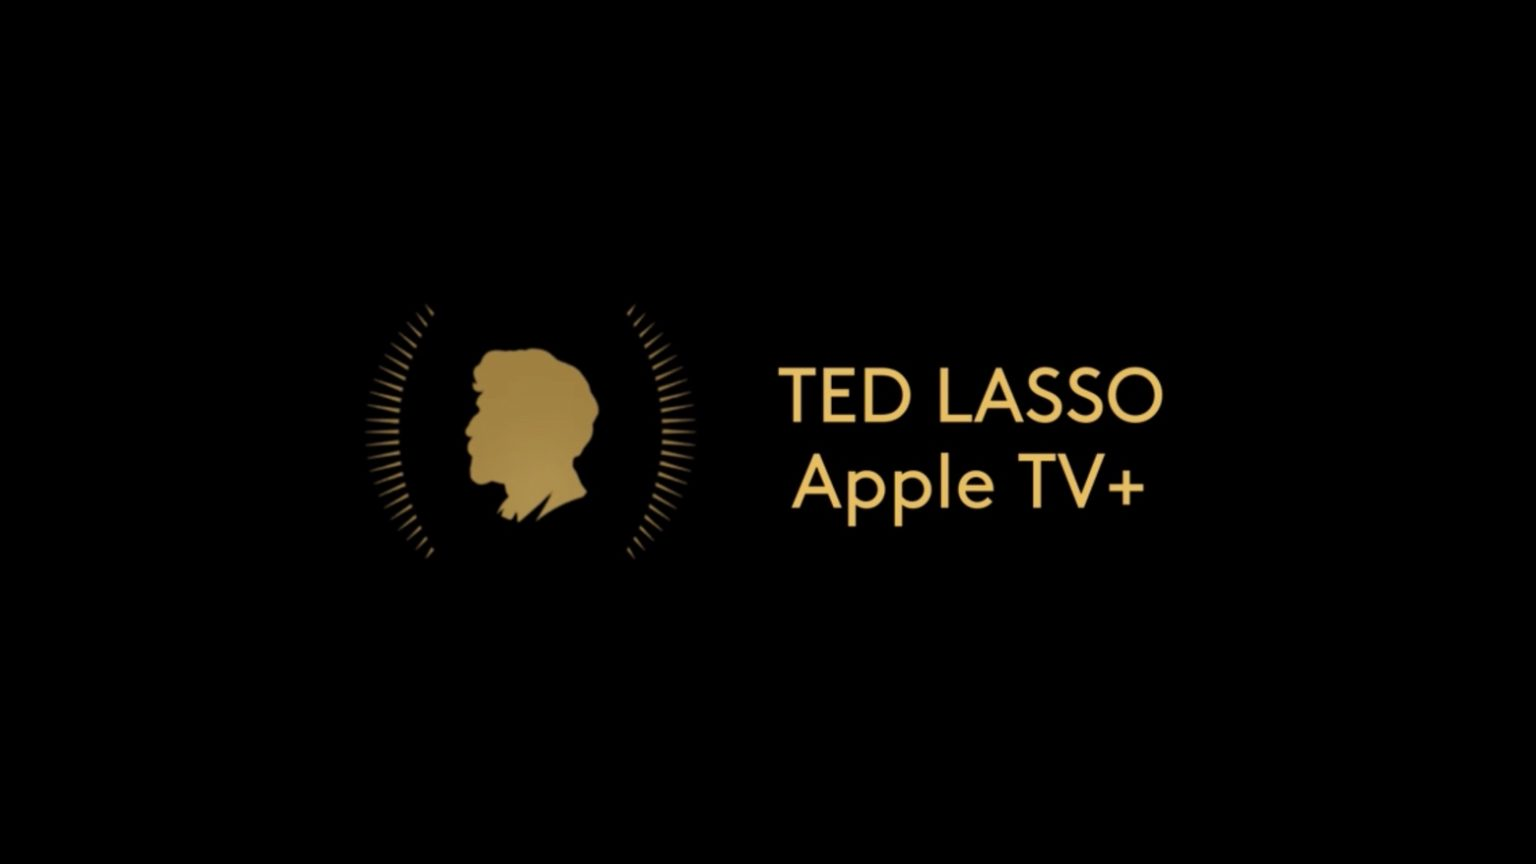 'Ted Lasso' scores a Peabody Award for countering toxic masculinity